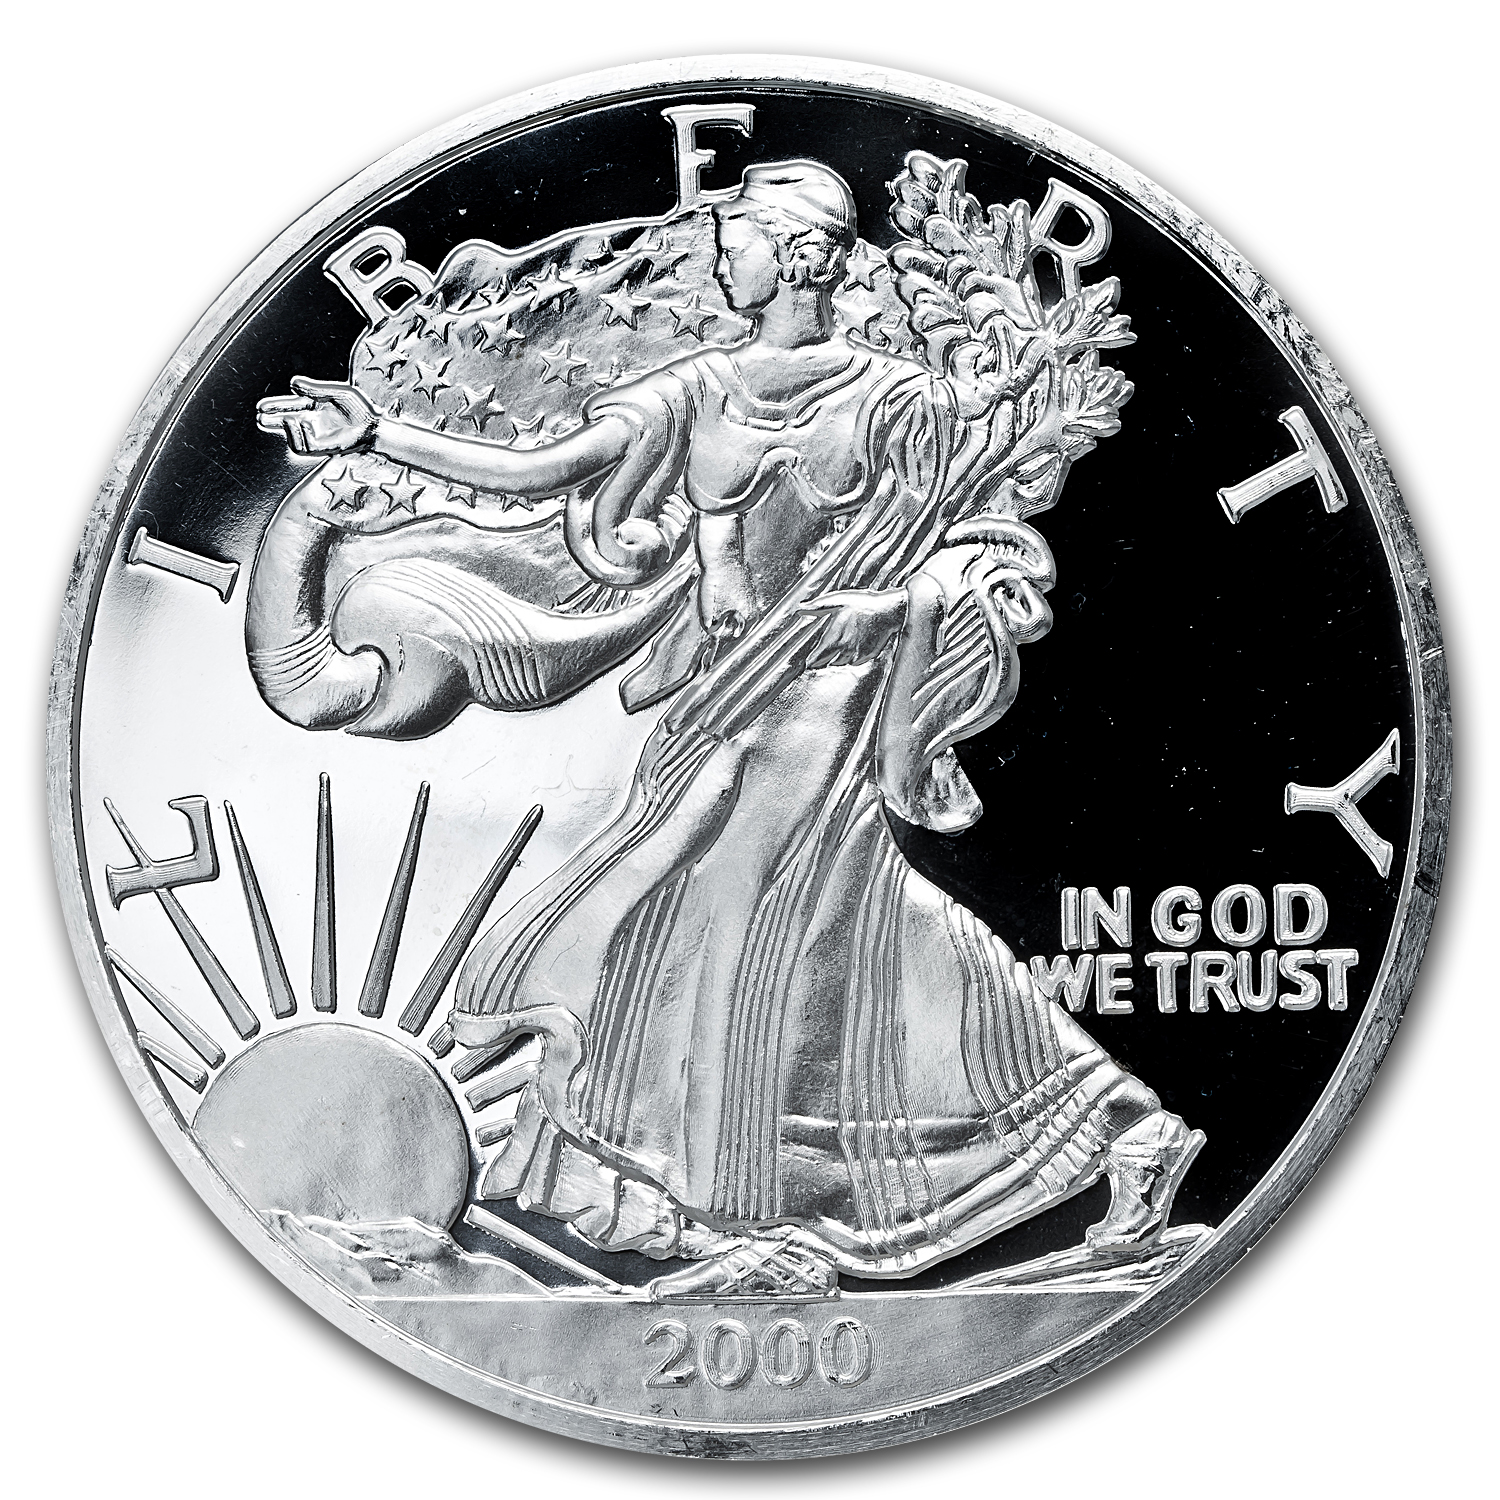 12 oz Silver Round - Silver American Eagle Prooflike